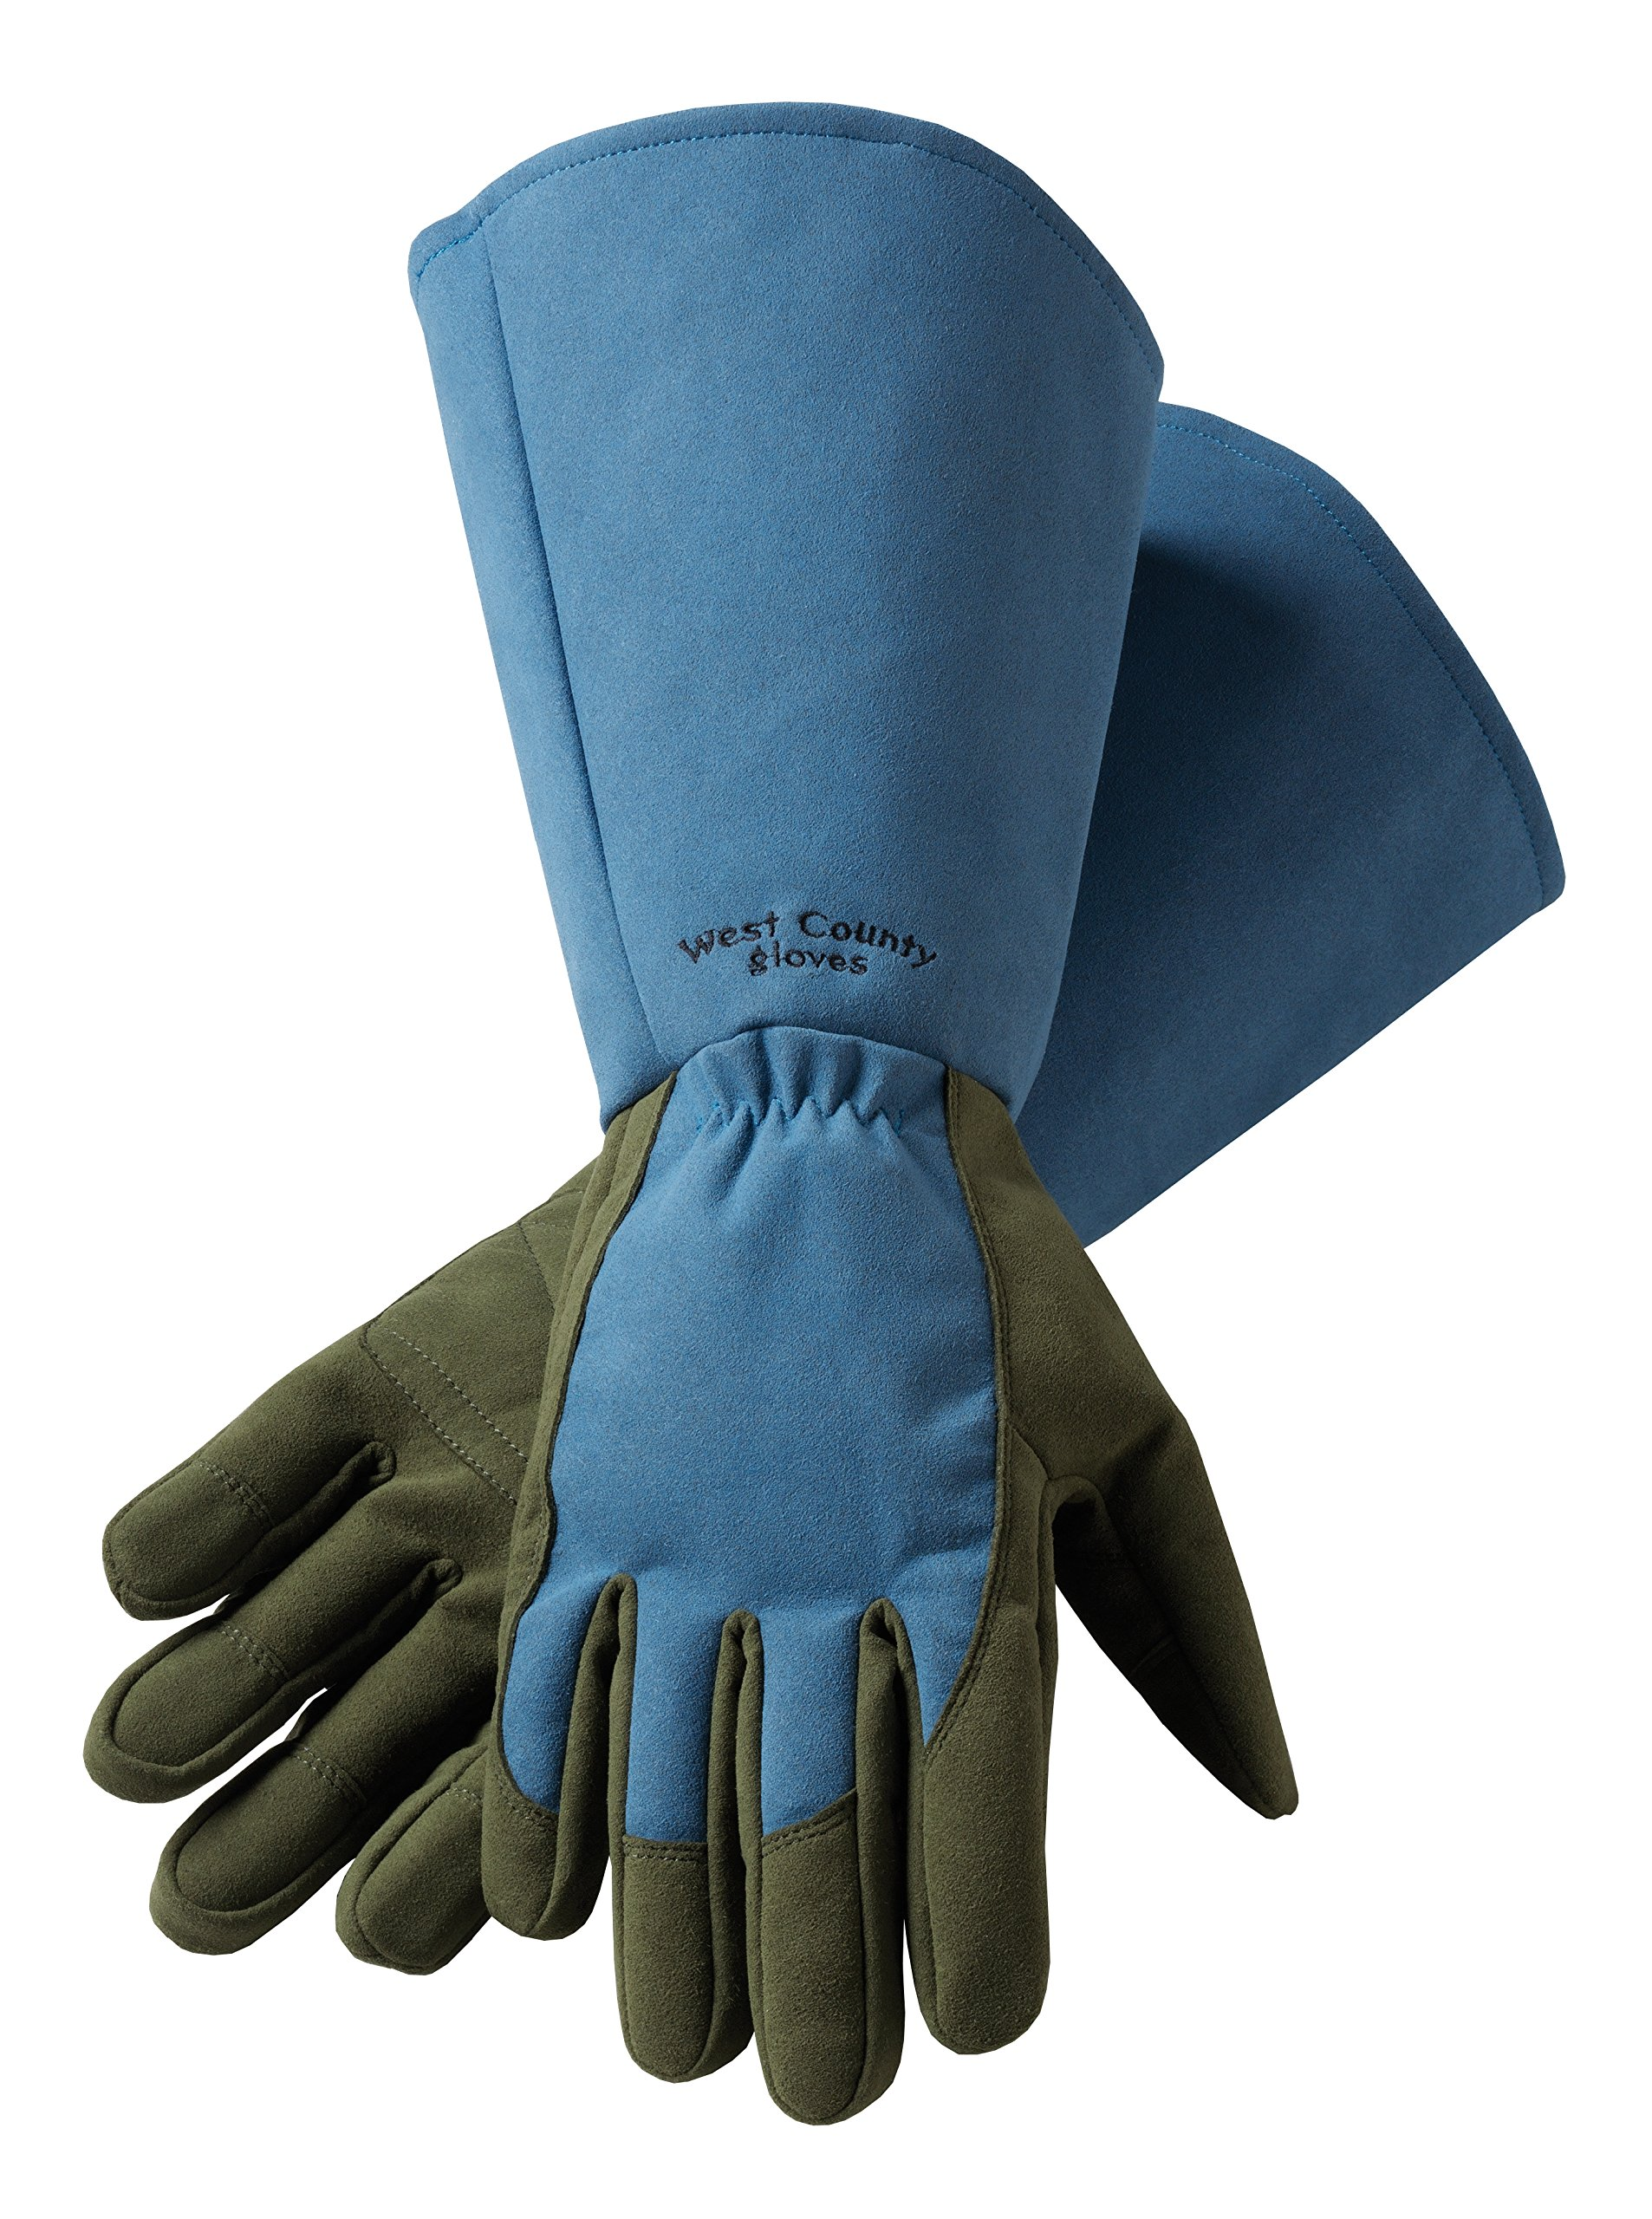 Safety Works 054B/M West County Rose Gauntlet Glove, Medium, Slate Blue by Safety Works